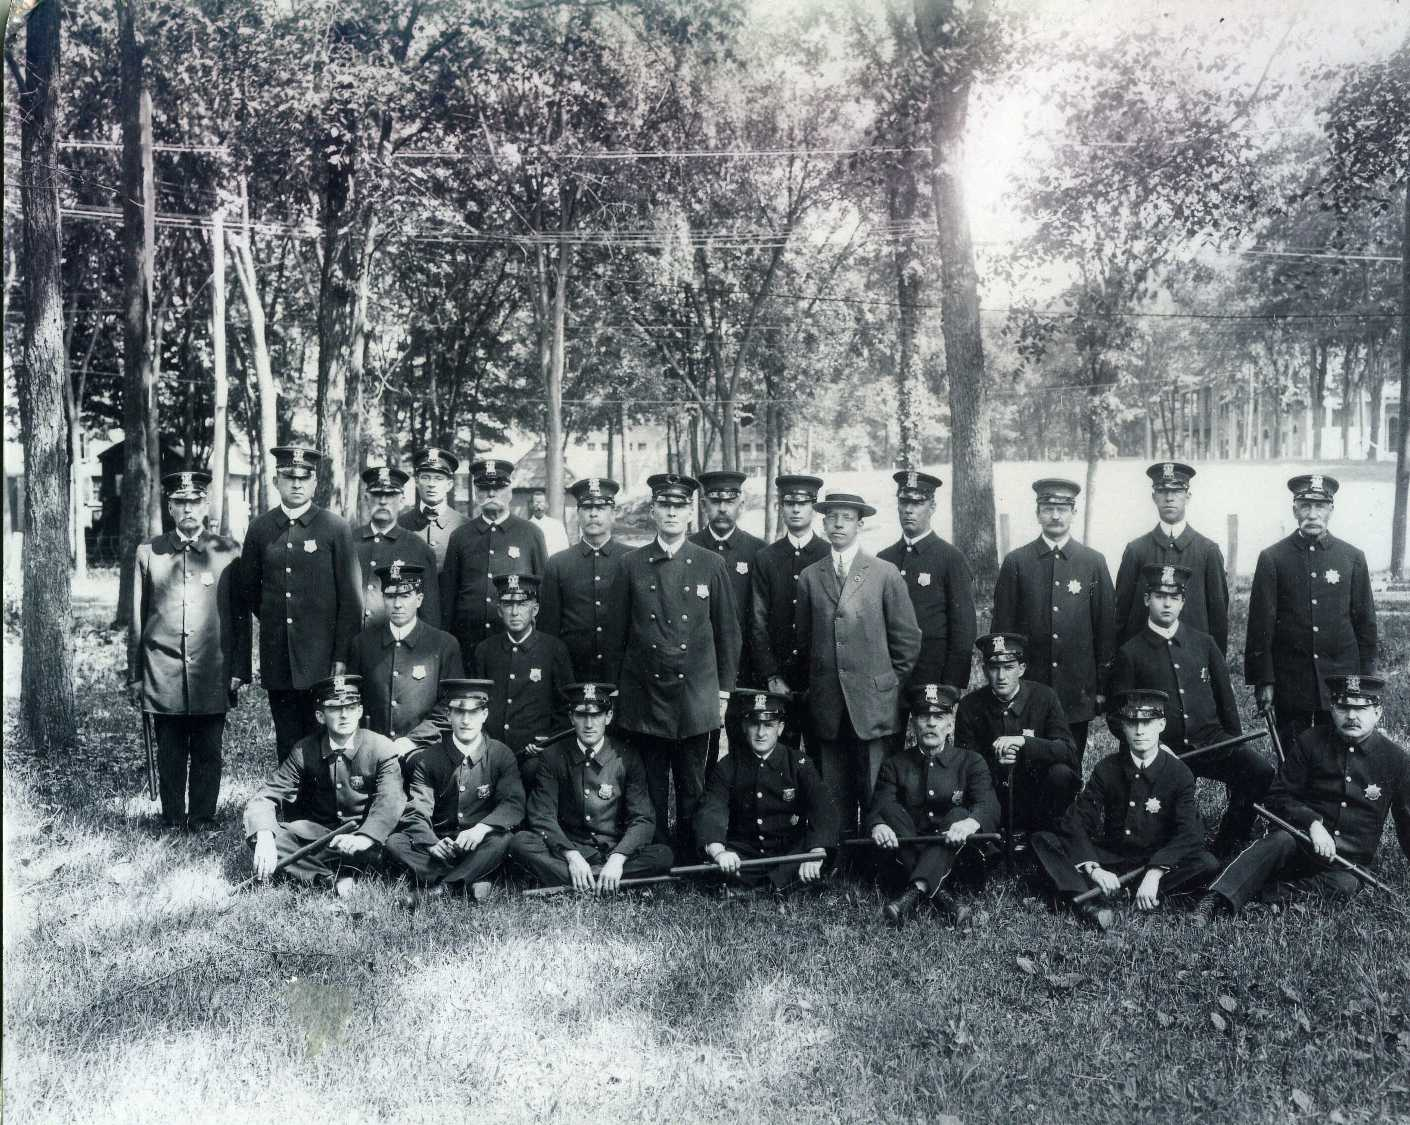 Saratoga Springs Police Department early 1900s